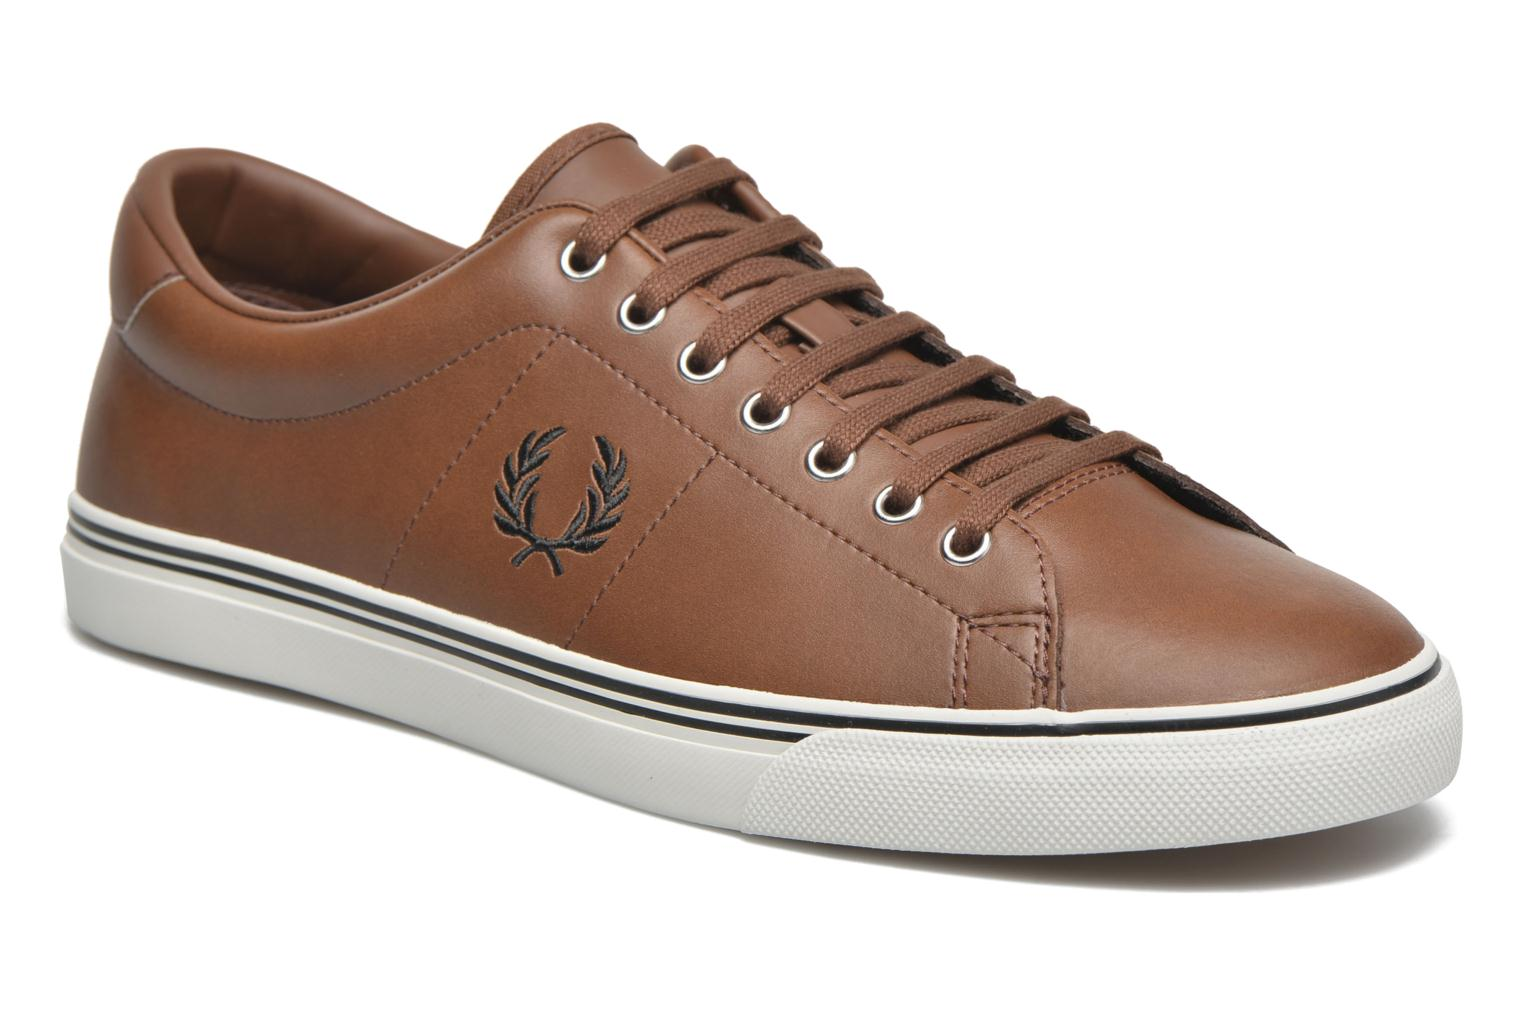 Sneakers Underspin Leather by Fred Perry